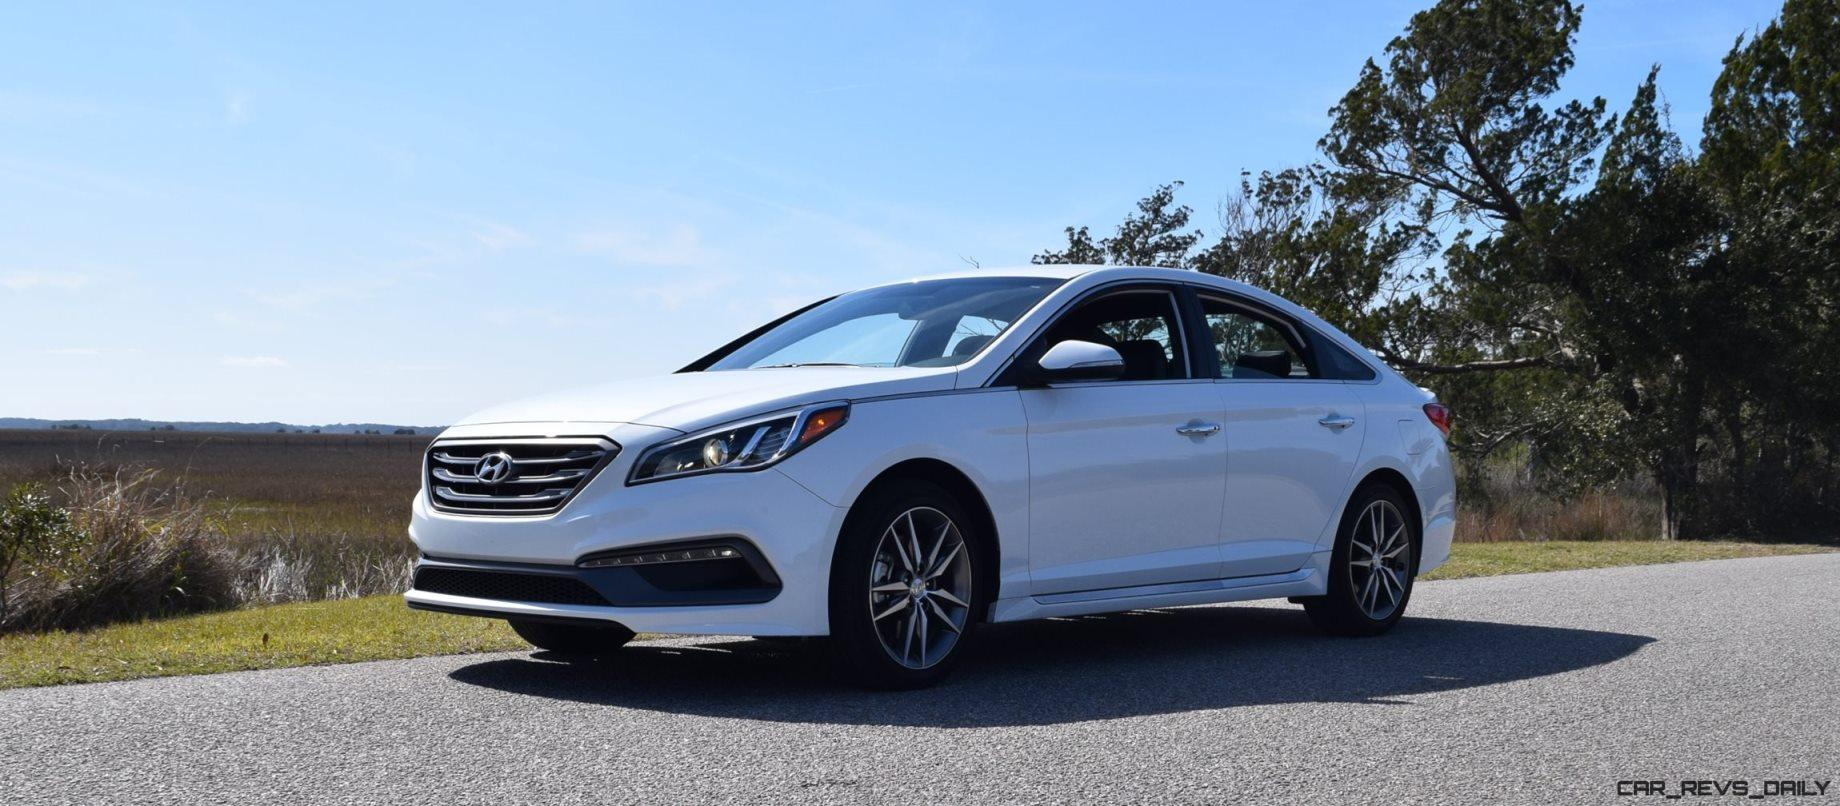 2016 hyundai sonata sport 2 0t quartz white 48 car revs. Black Bedroom Furniture Sets. Home Design Ideas